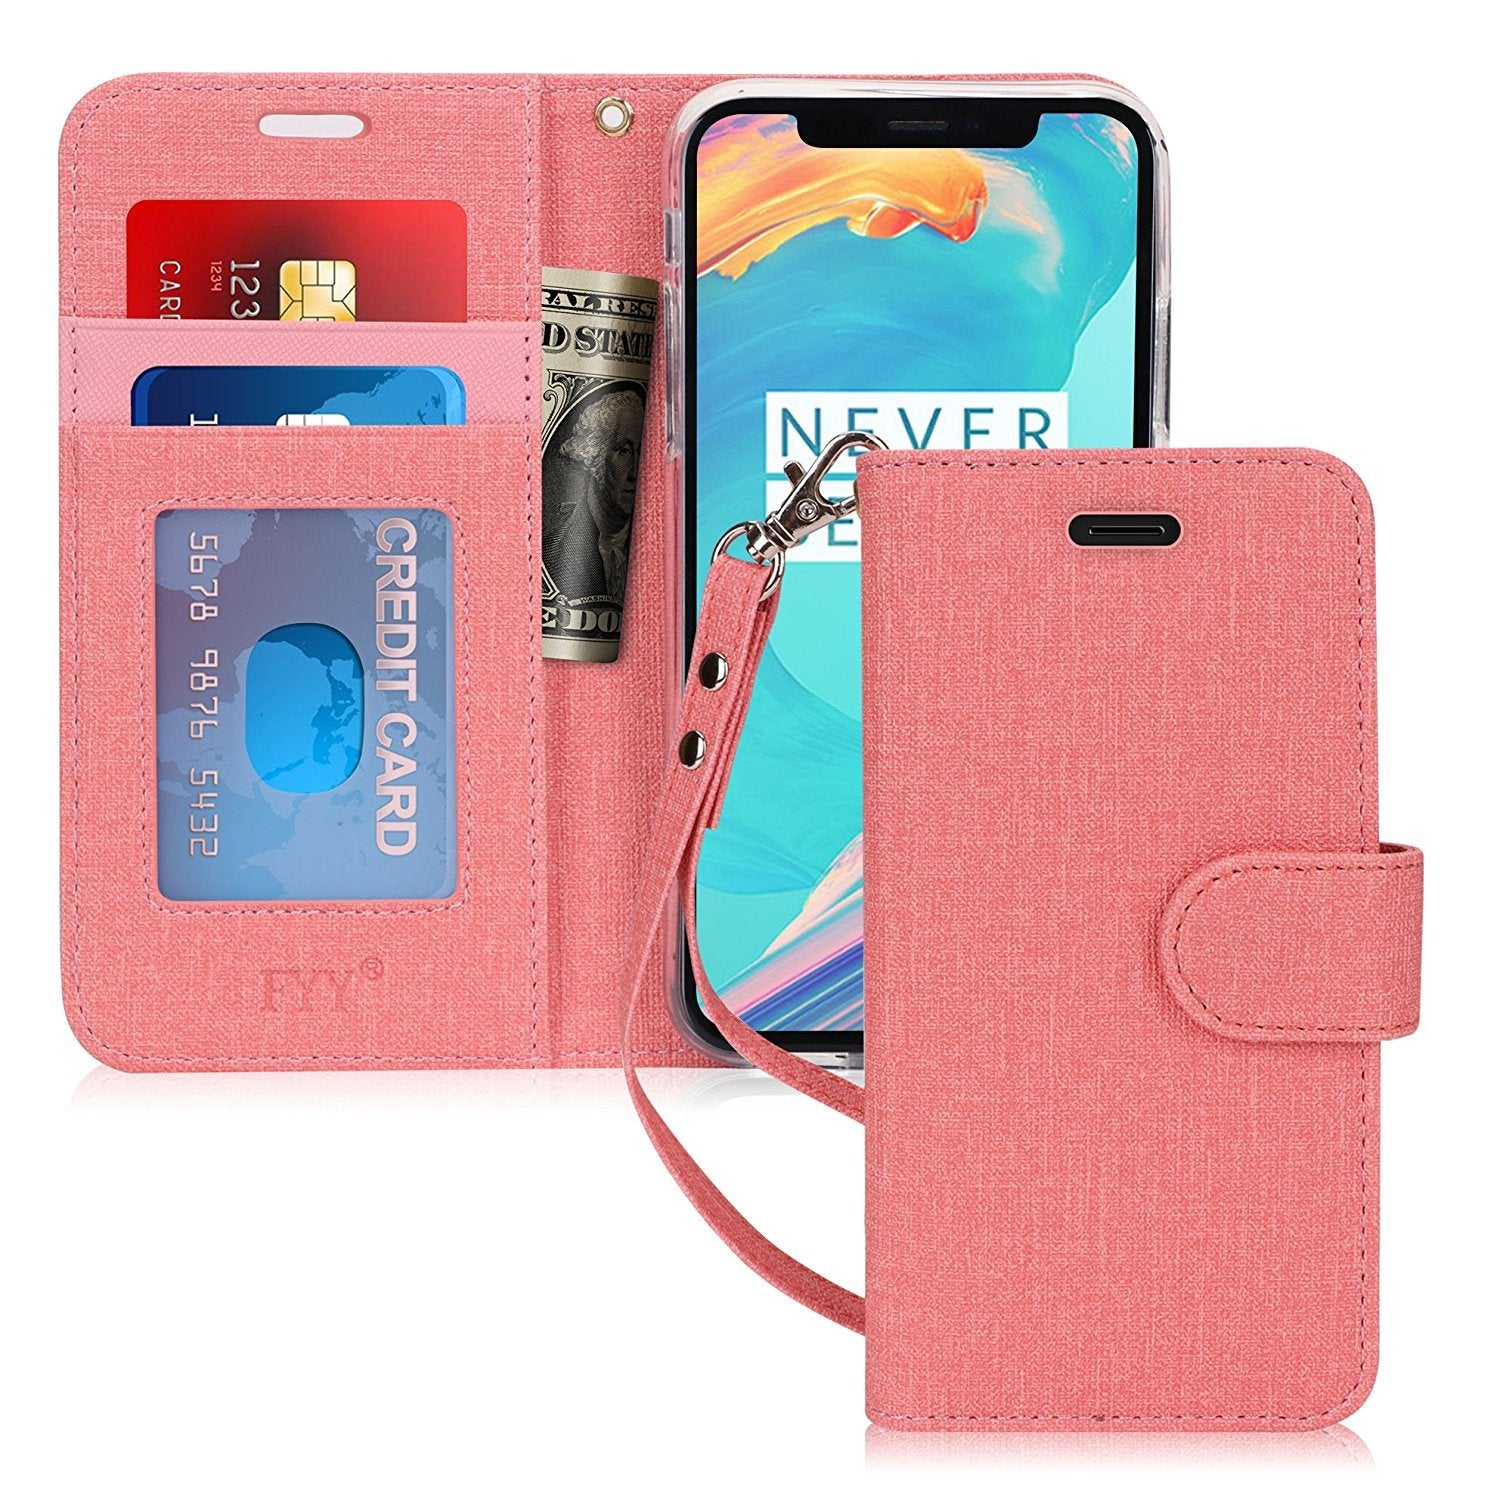 "Canvas Wallet Case for iPhone Xs 5.8"" (2018)/iPhone X/10 2017"